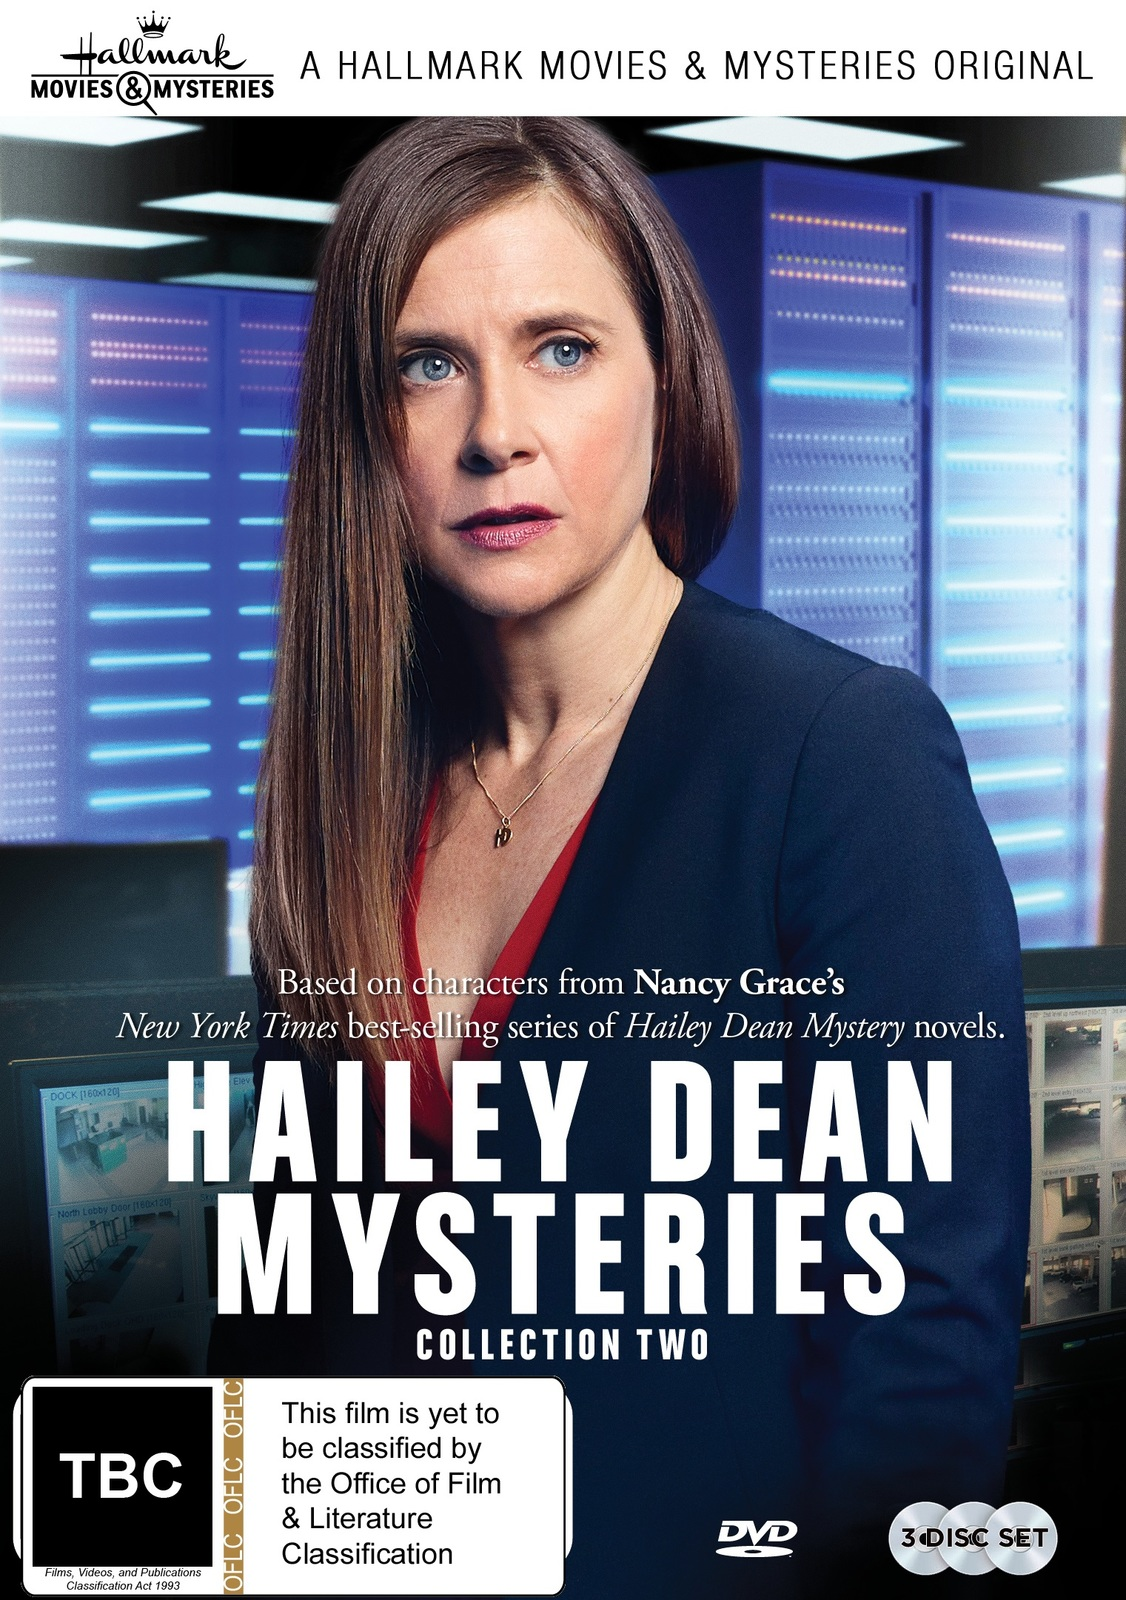 Hailey Dean Mysteries Collection Two on DVD image